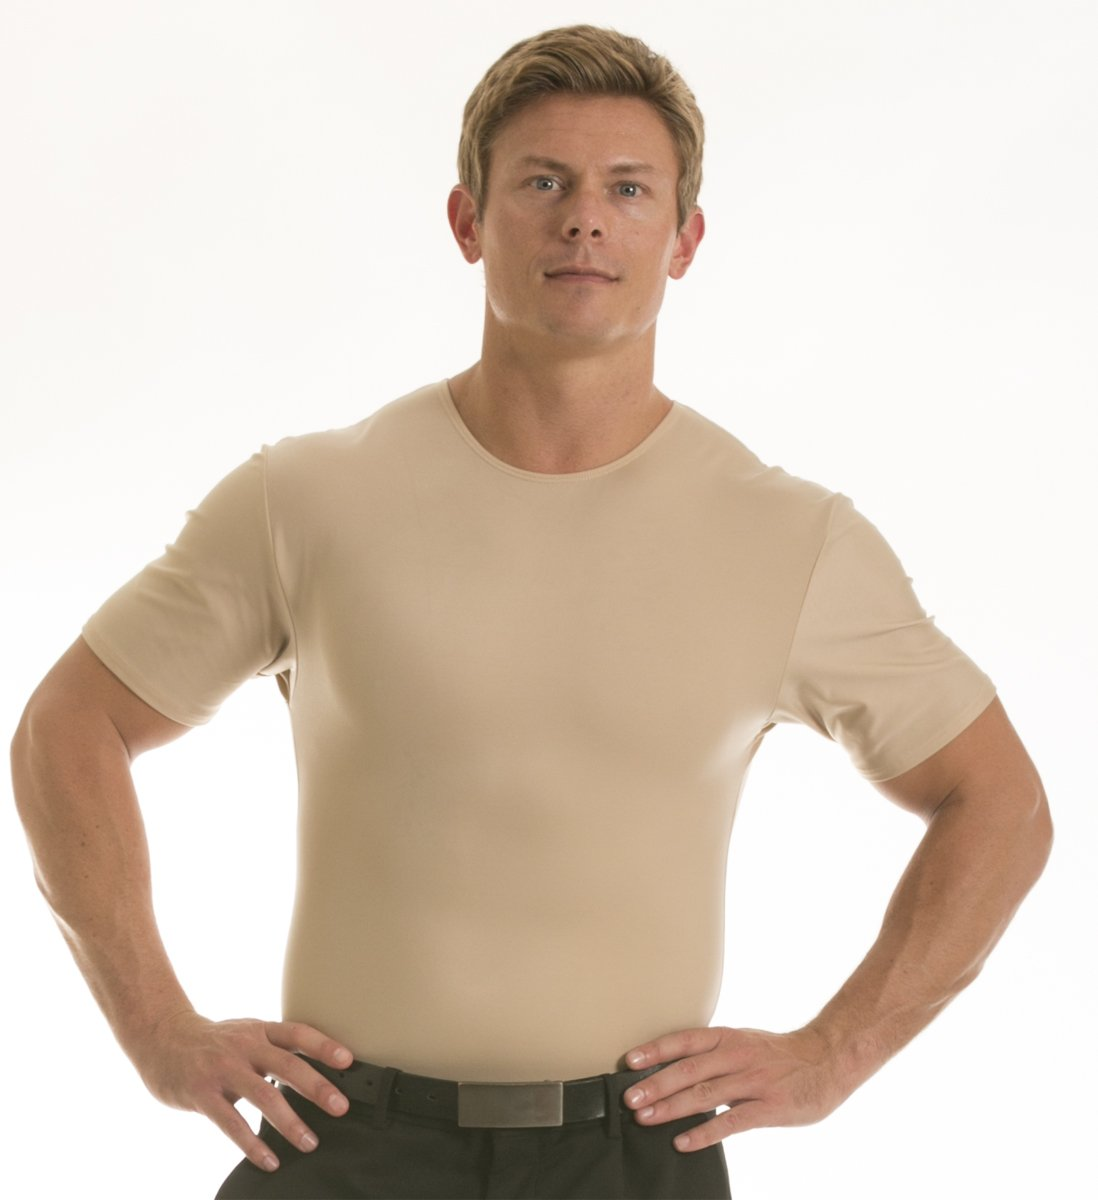 Insta Slim Men's Compression Crew-Neck T-Shirt (X-Large, Nude), The Magic Is In The Fabric! by Insta Slim (Image #1)